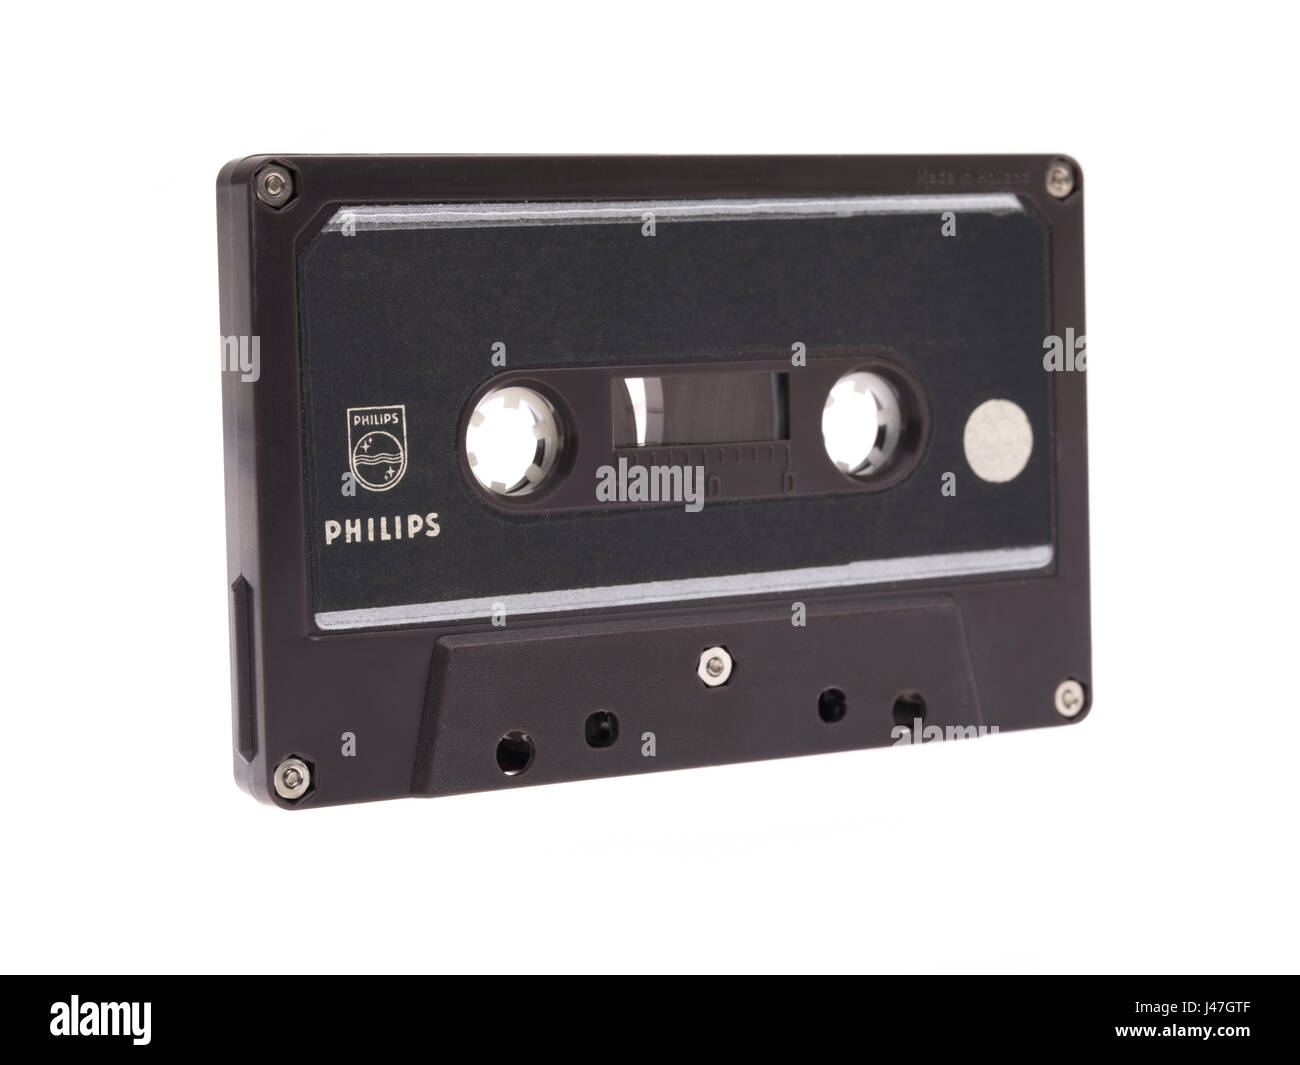 Philips EL 1903-01 first commercially available audio compact cassette 1963 - Stock Image